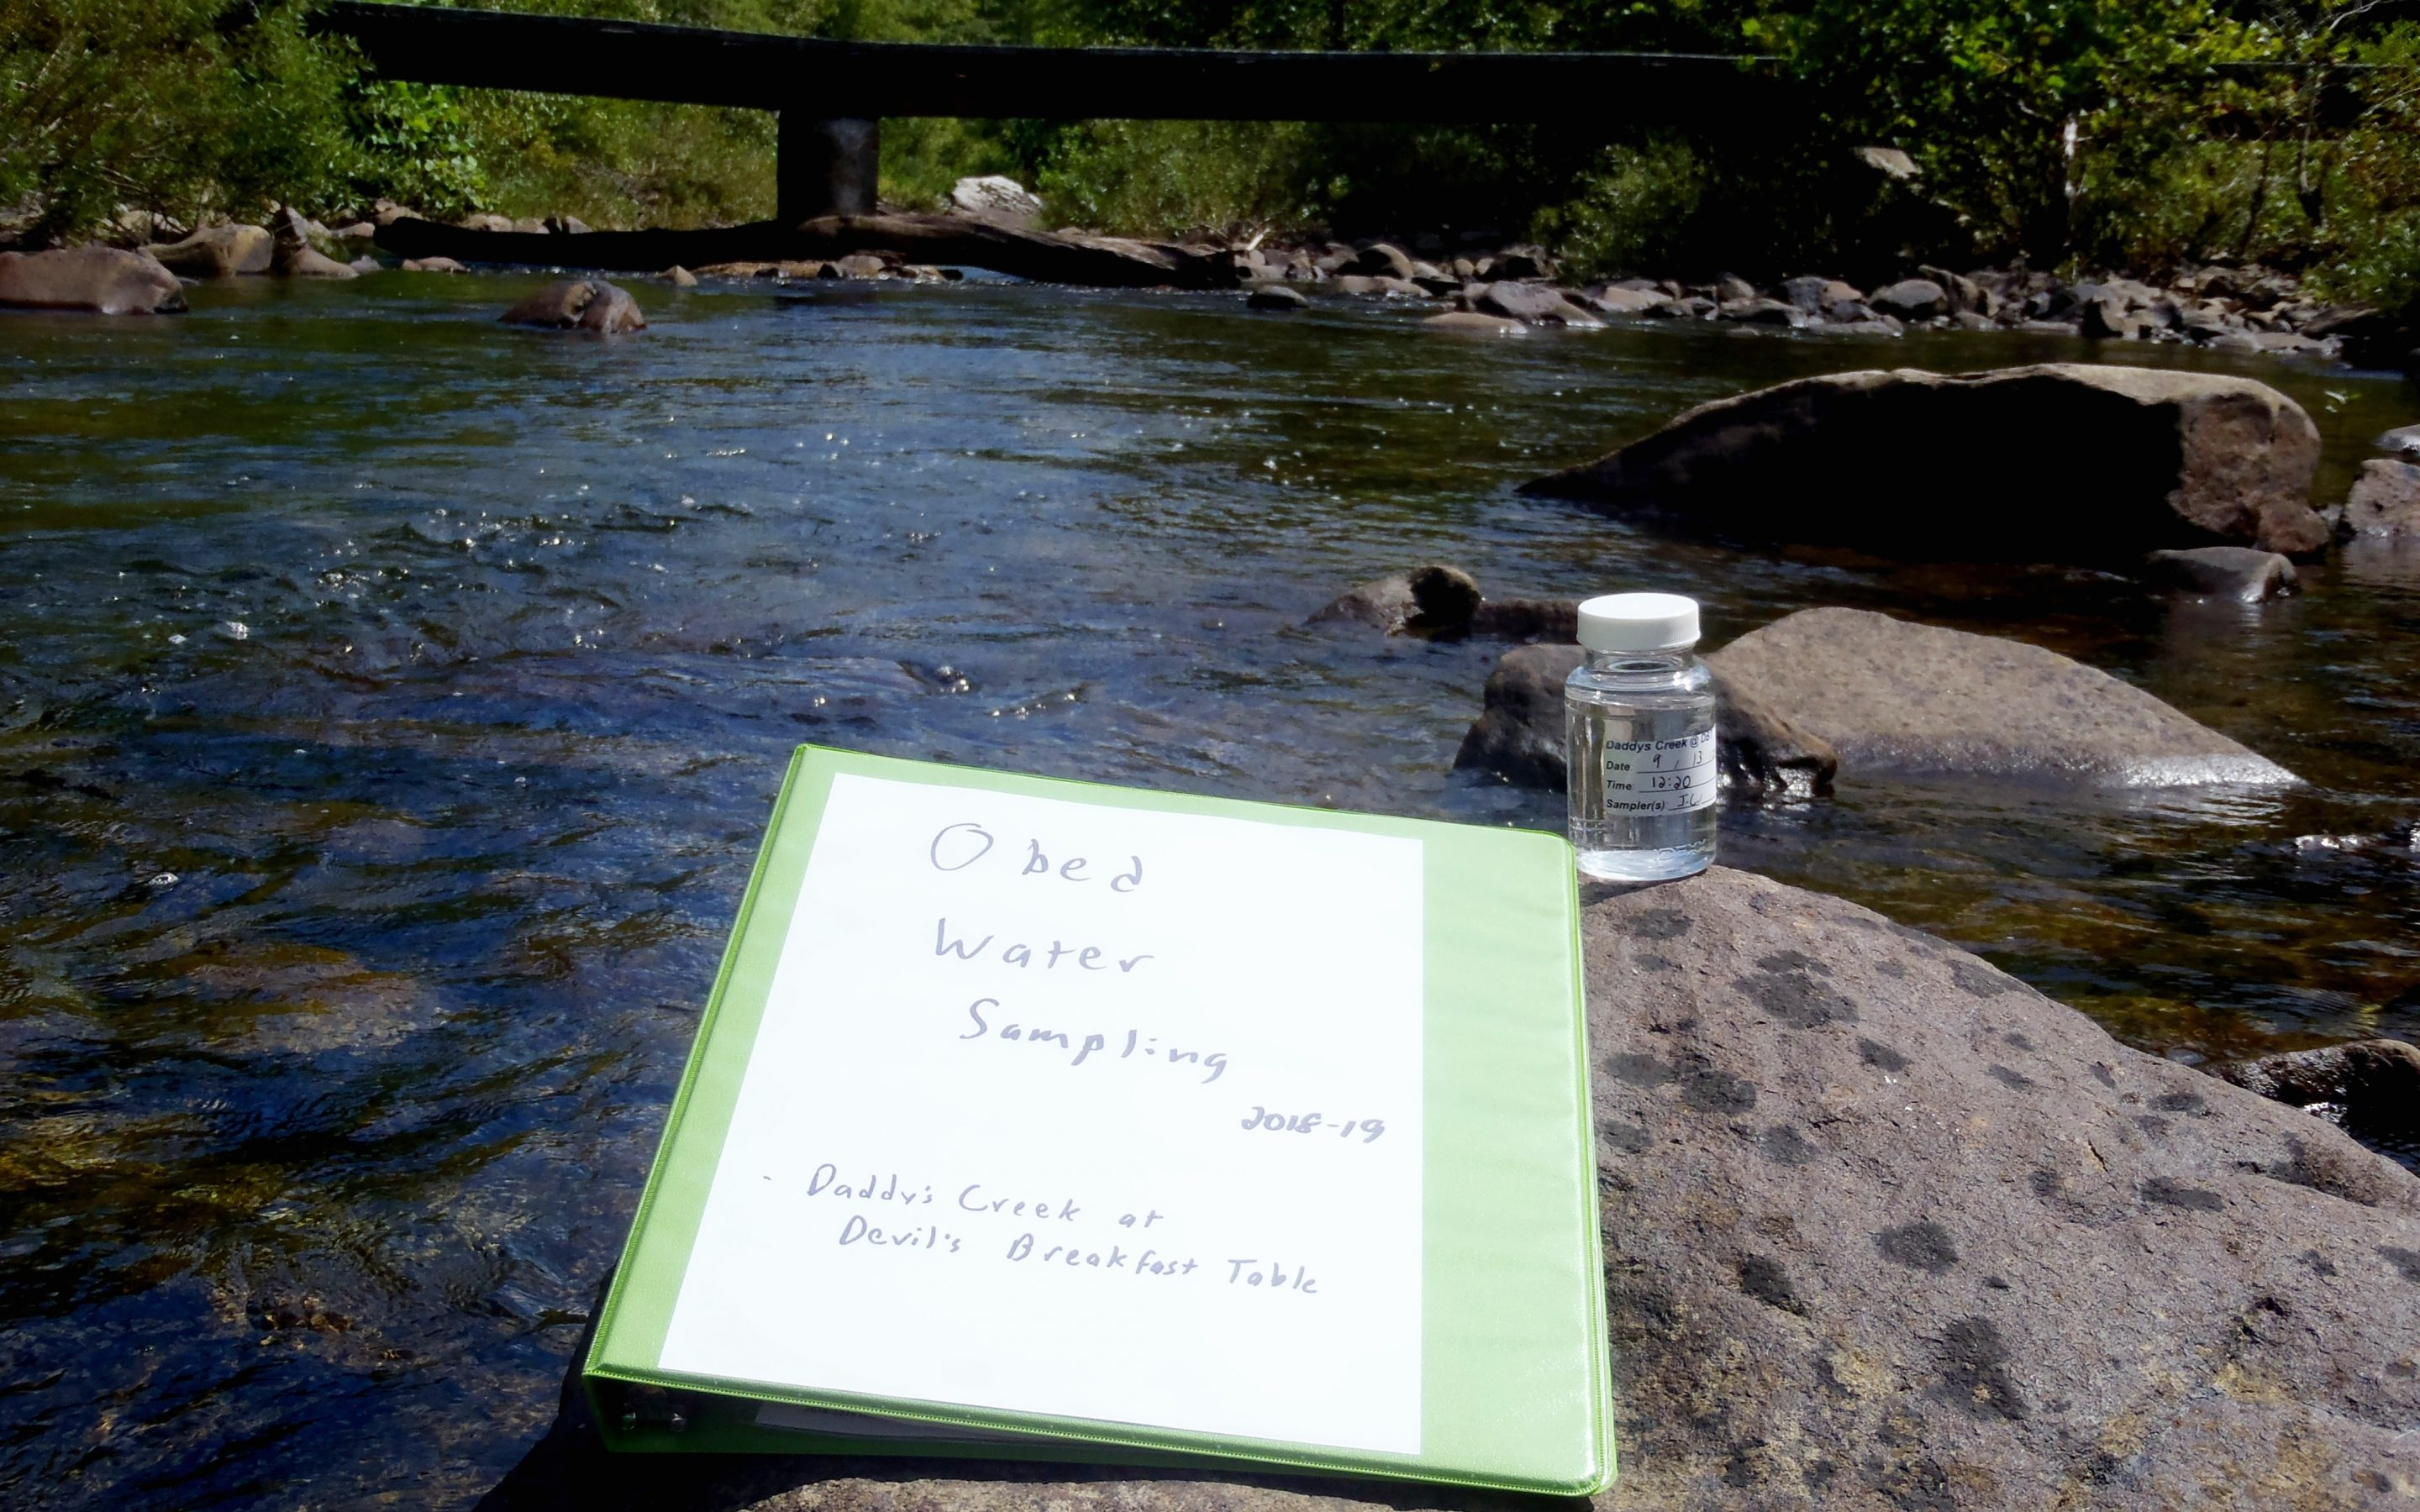 A Citizen Science Experience in the Obed Wild & Scenic River